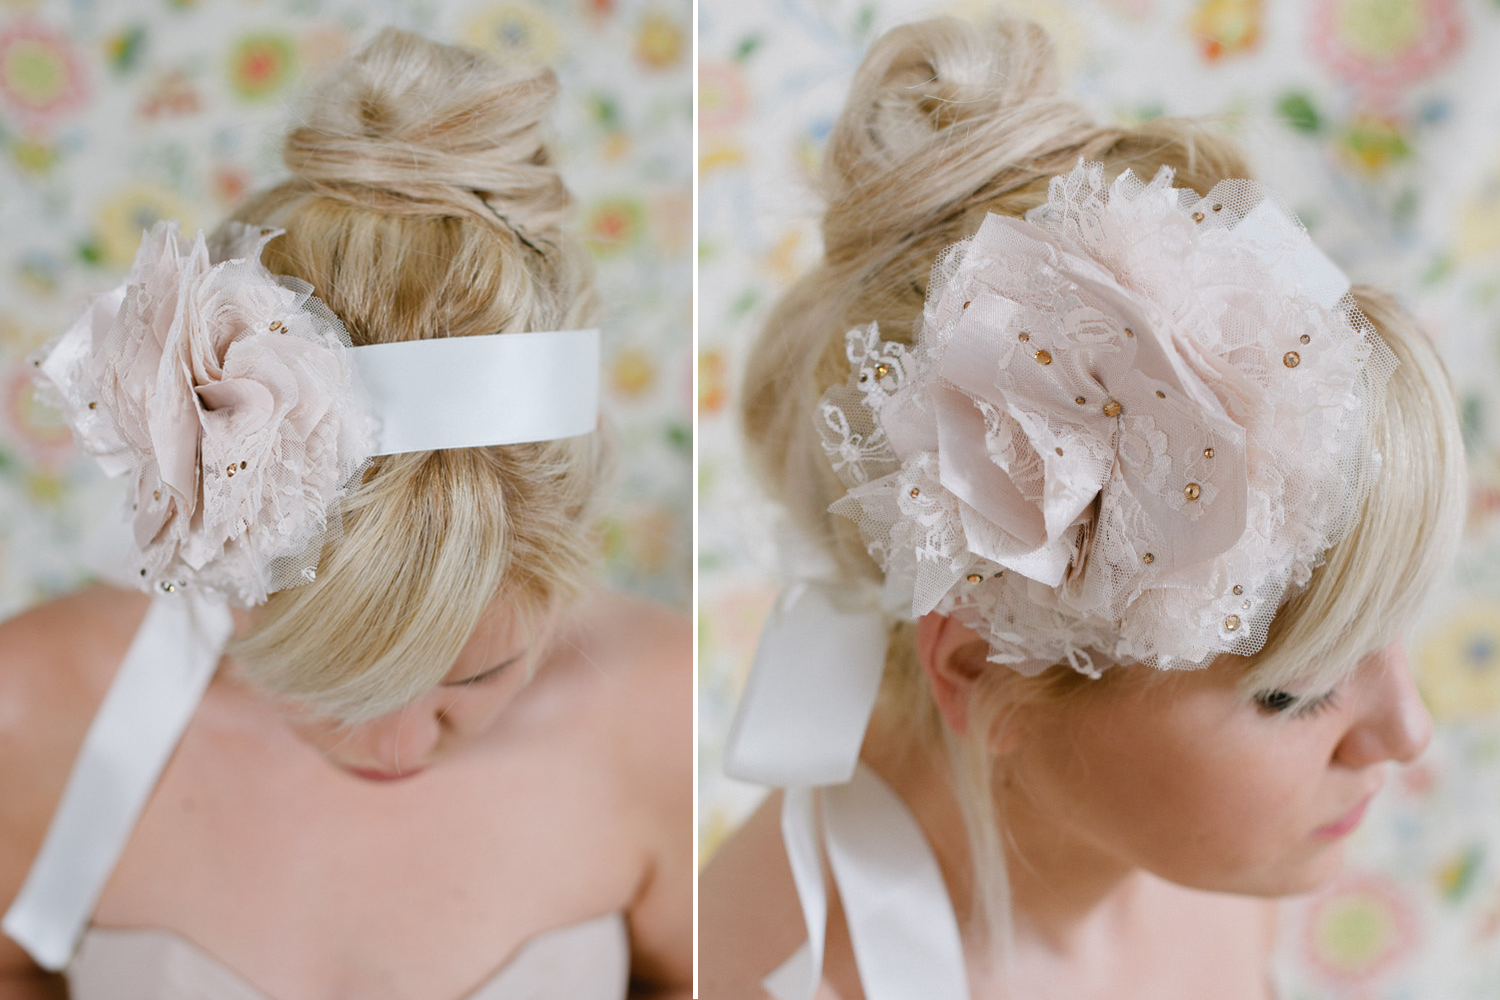 Nye-wedding-ideas-bridal-headband-with-flower.original